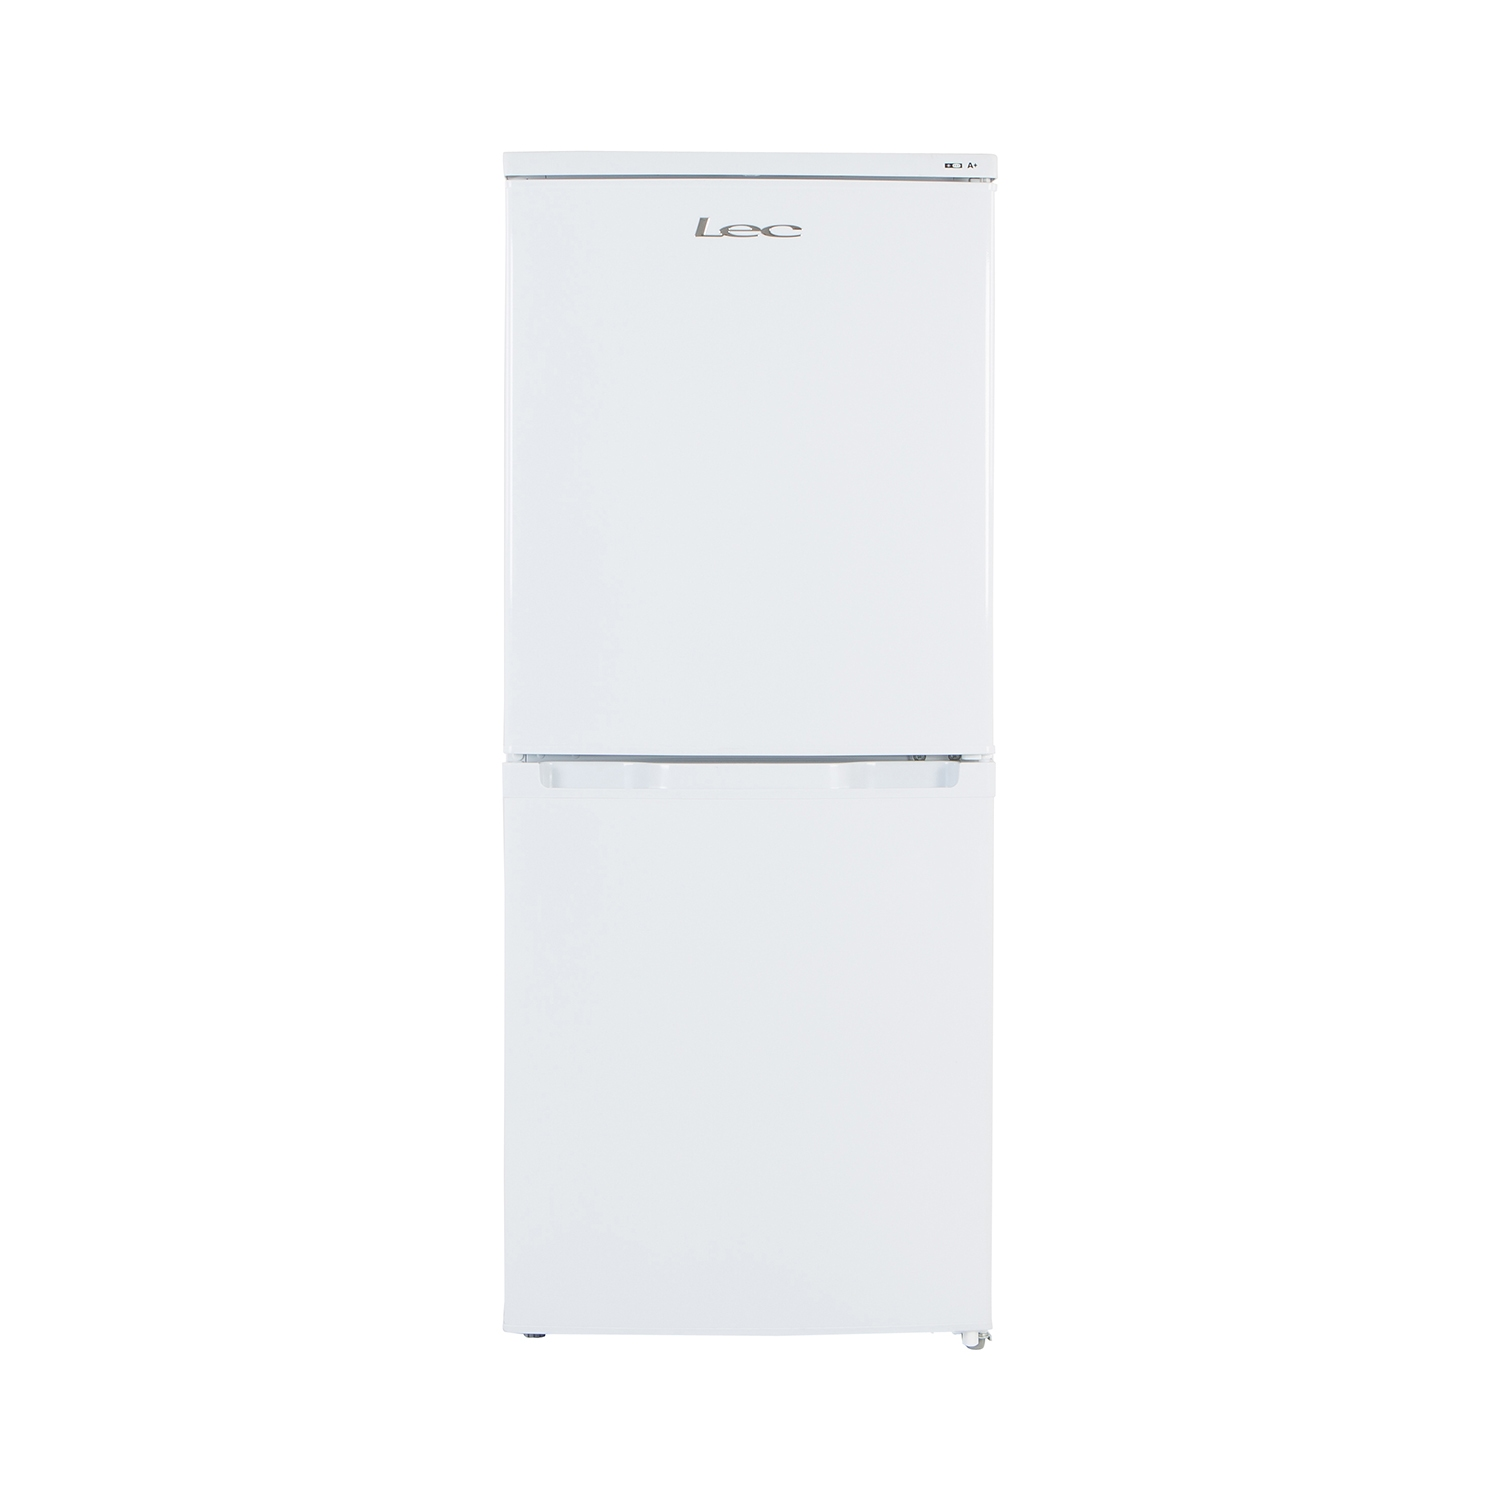 Lec 50cm Fridge Freezer - White - A+ Rated - 0